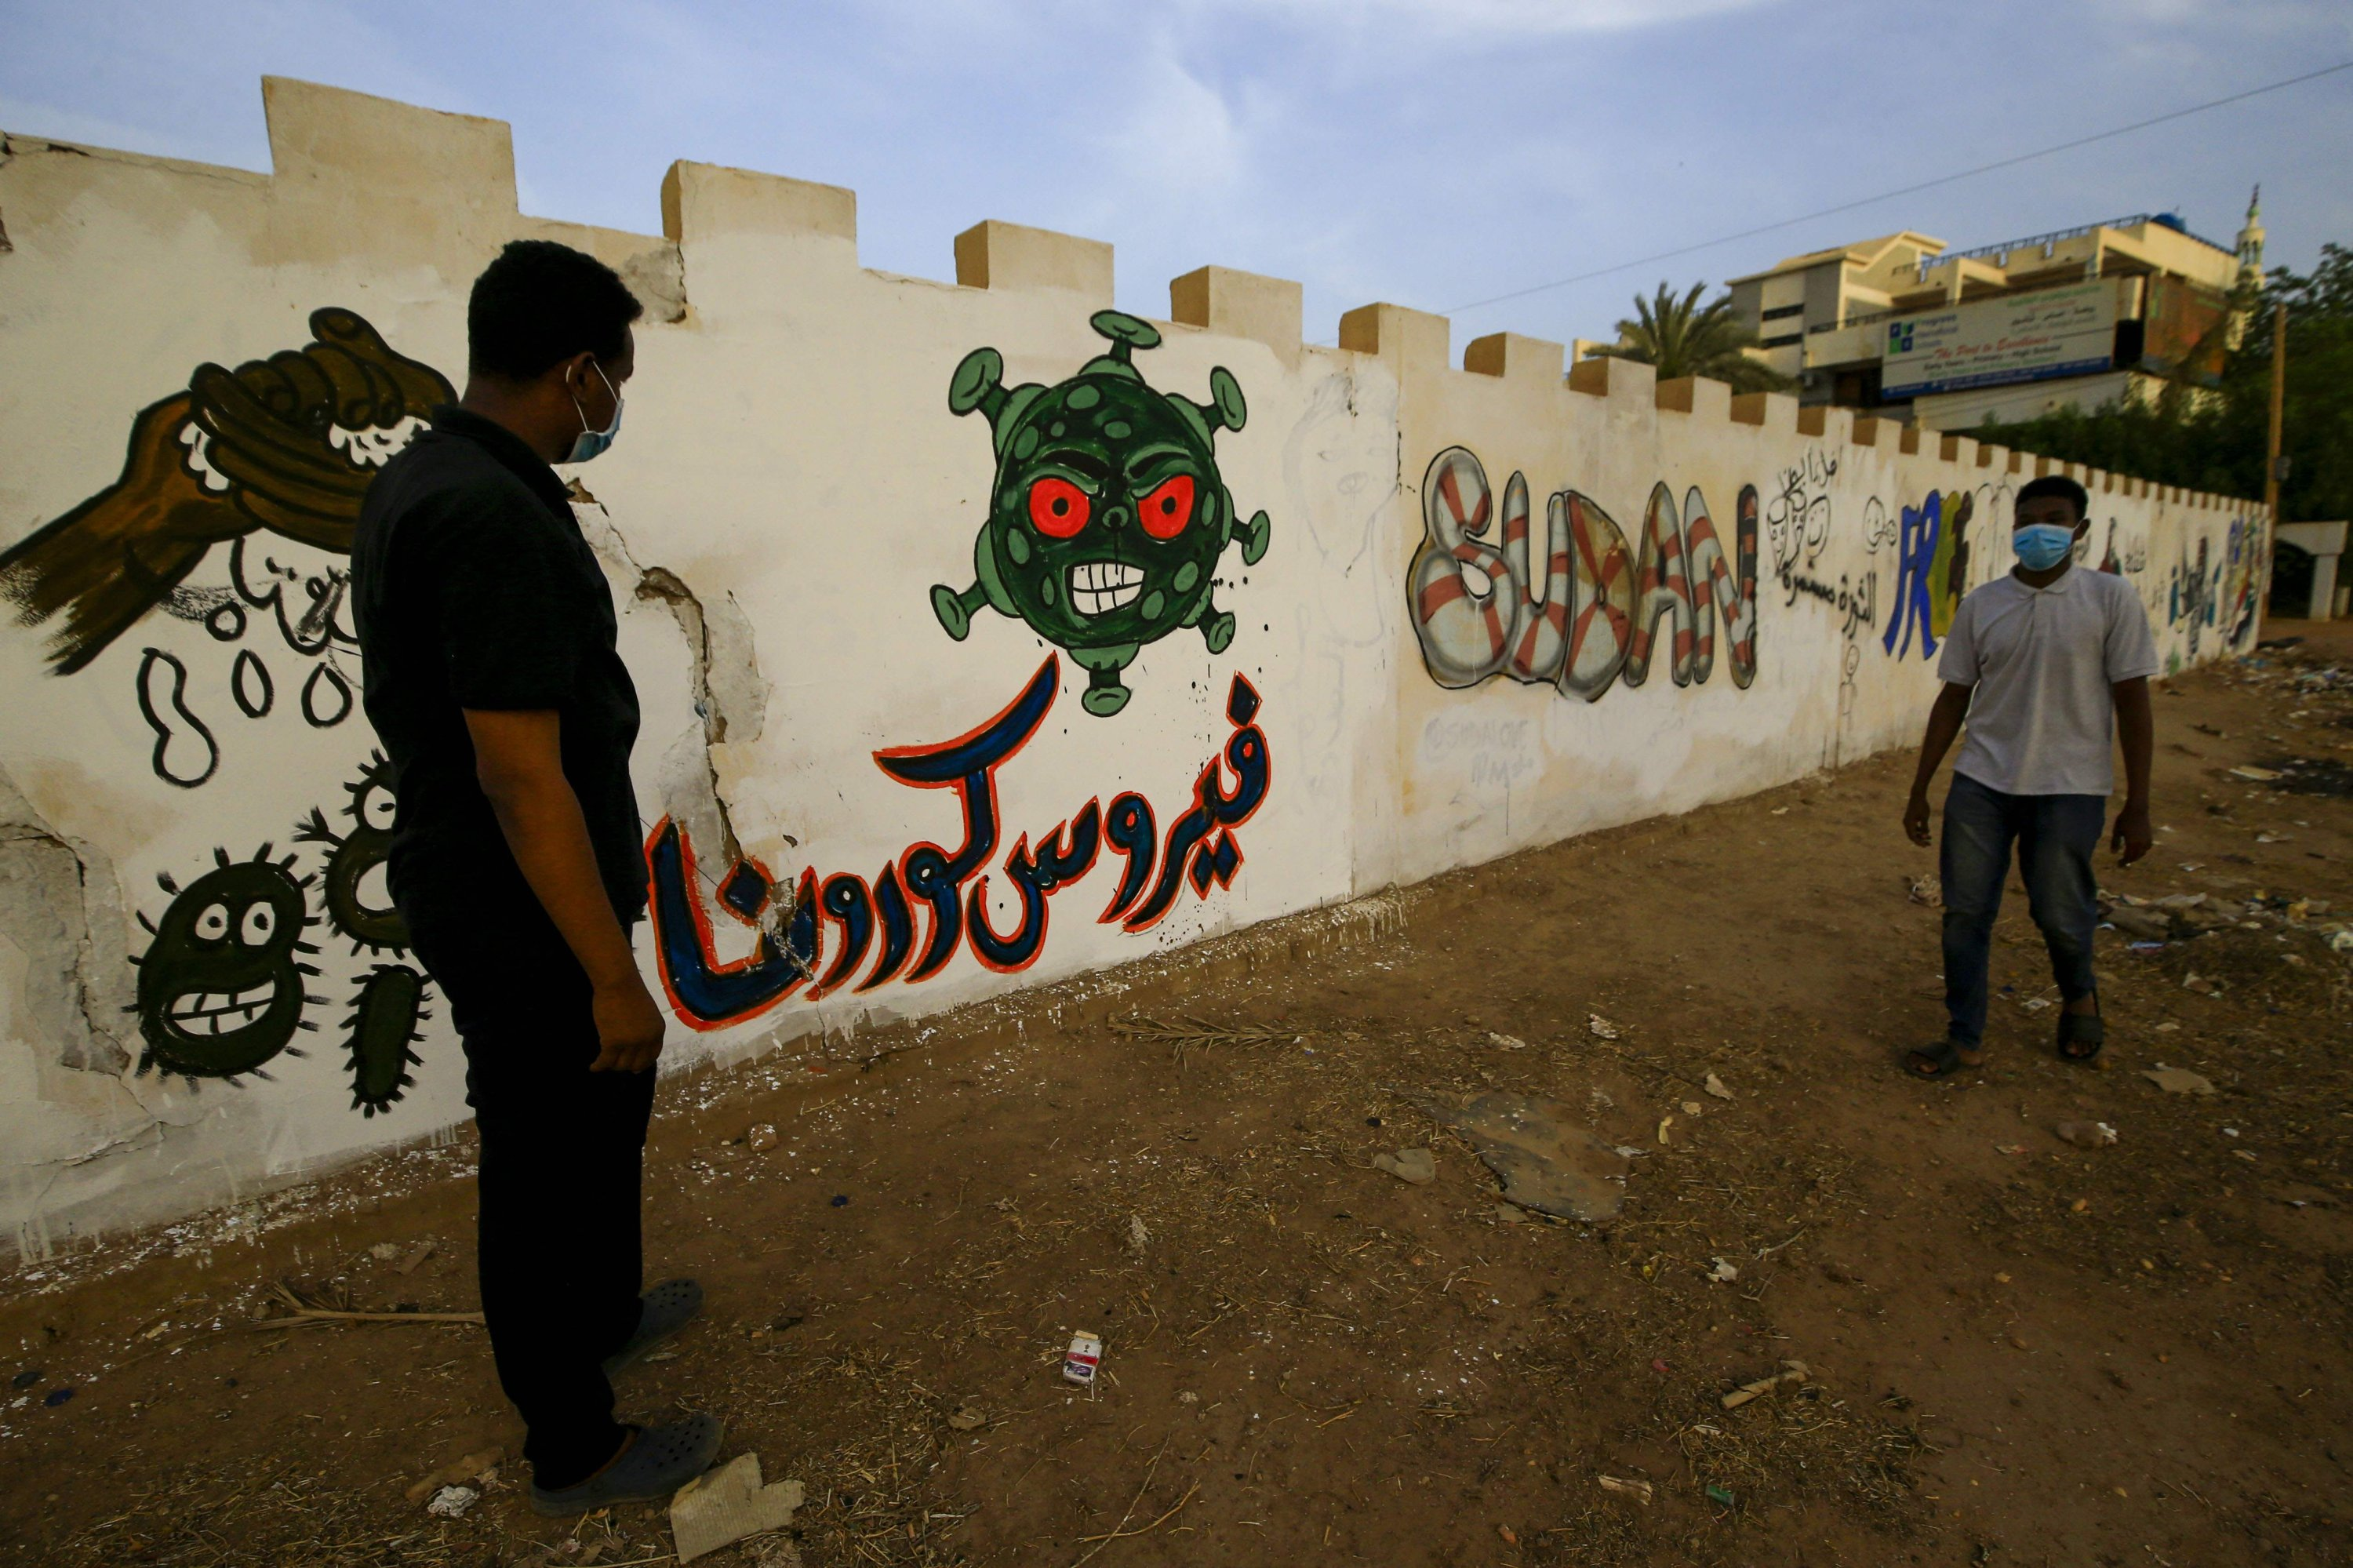 Sudan, The Fall Of Bashir One Year Ago. Covid-19 And Tensions Weaken The Democratic Process